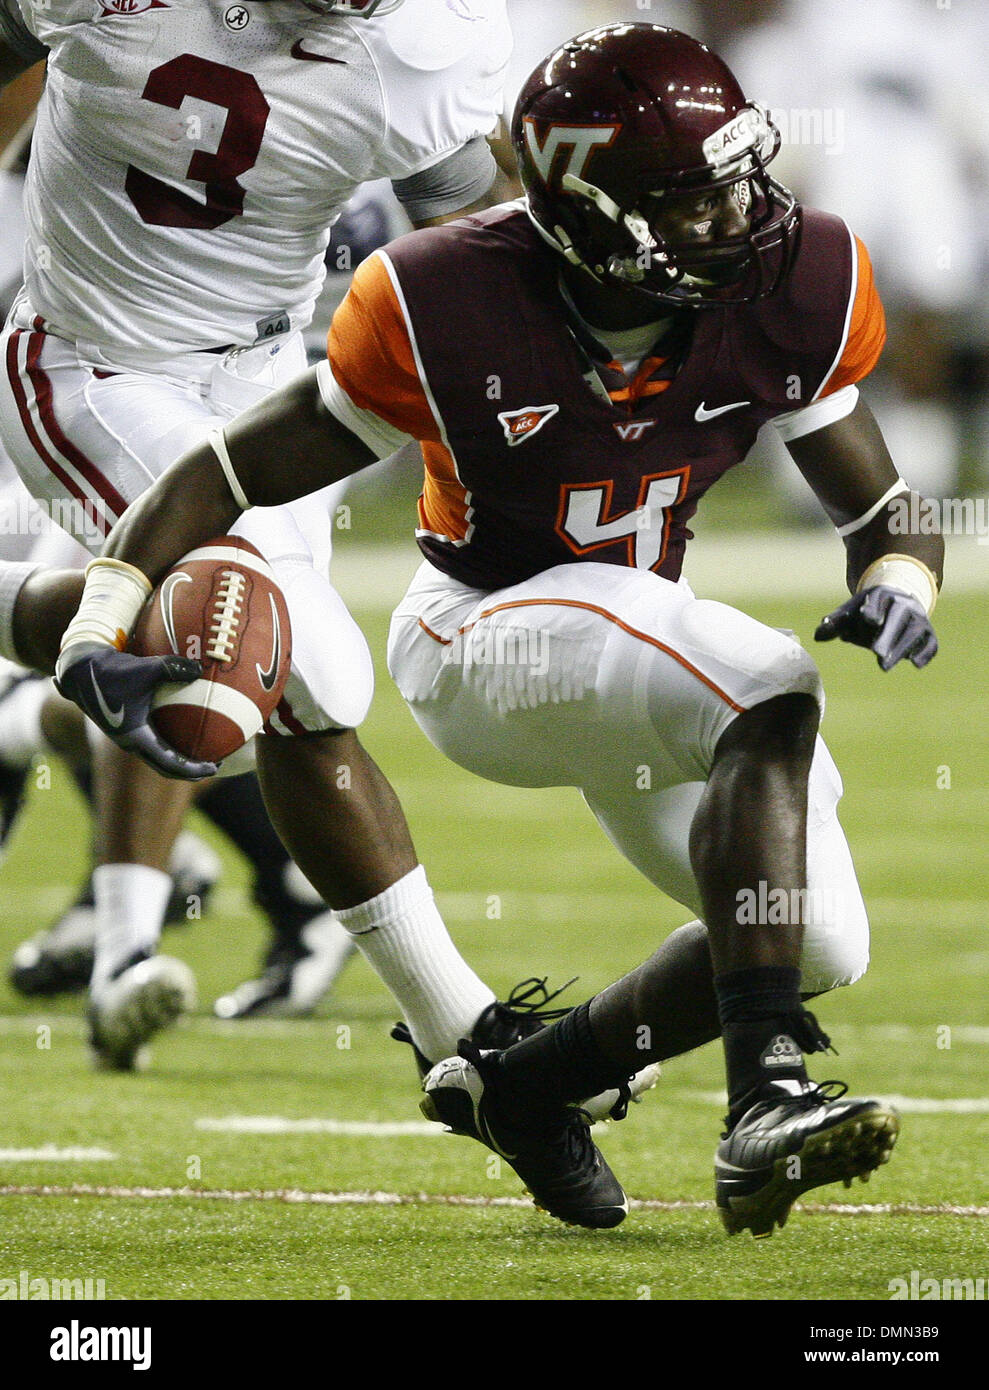 Sep 05, 2009 - Atlanta, Georgia, USA - NCAA Football - Virginia Tech's DAVID WILSON attempts a run late in Saturday's match up against Alabama in the Georgia Dome. (Credit Image: © Josh D. Weiss/ZUMA Press) - Stock Image